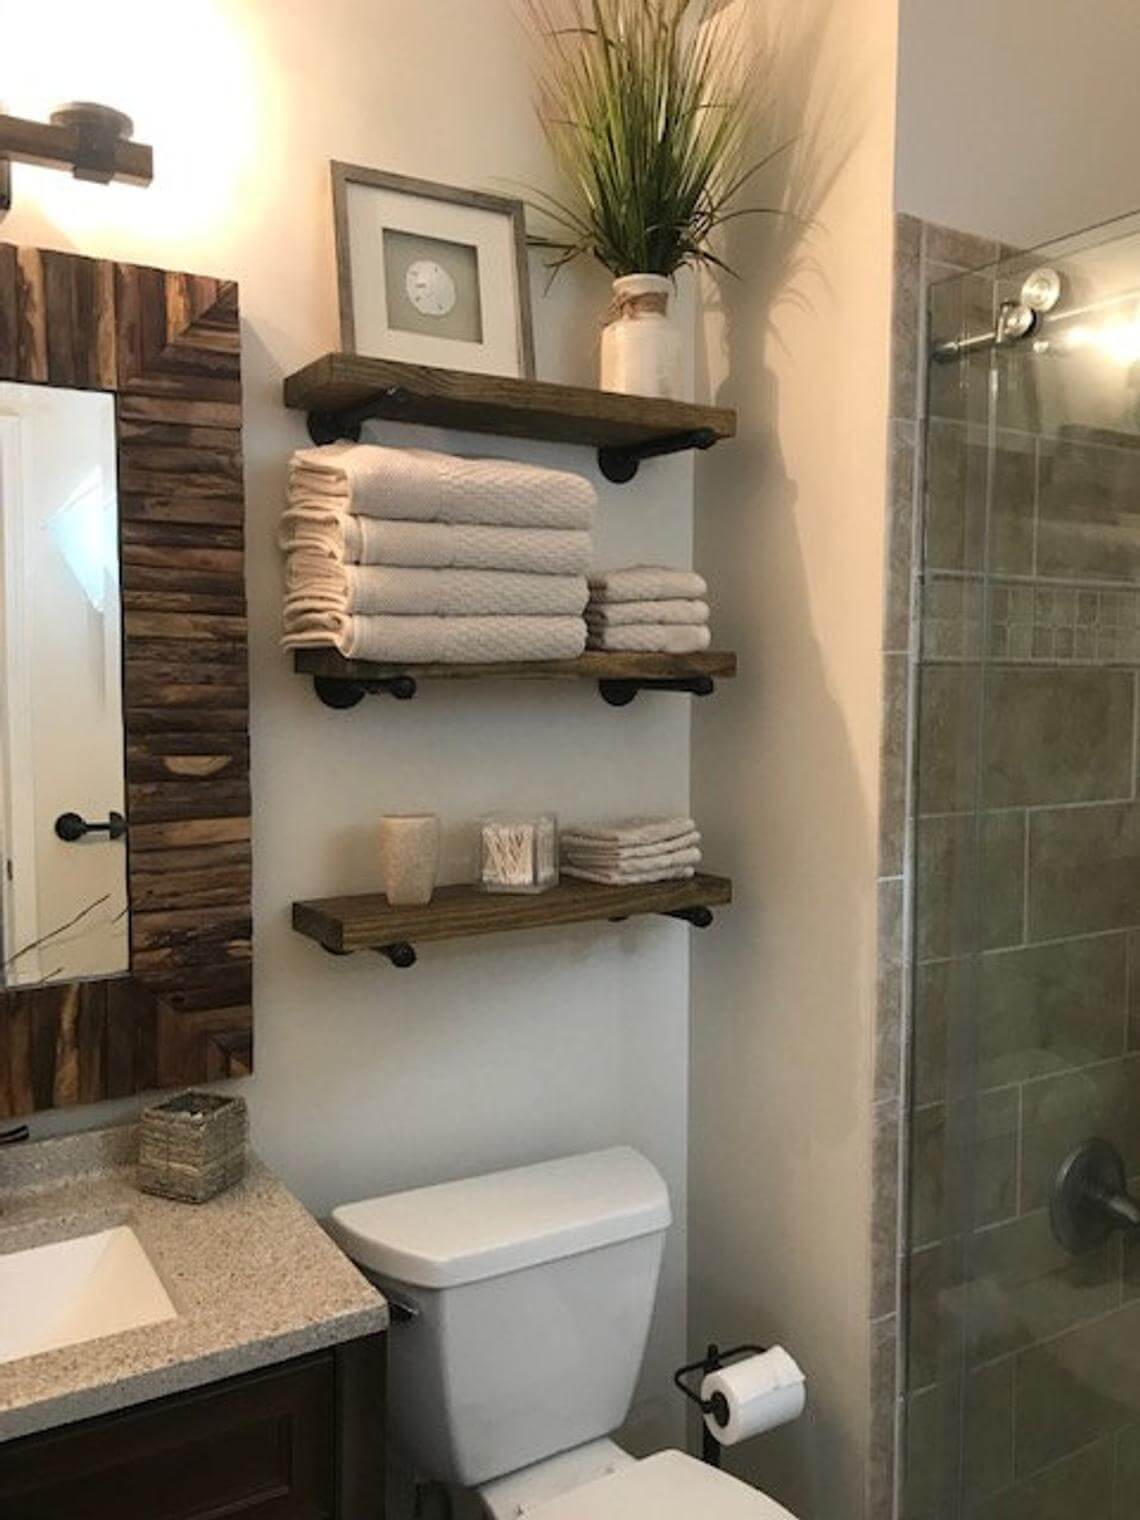 Pipe and Wood Shelves for Bathroom Storage